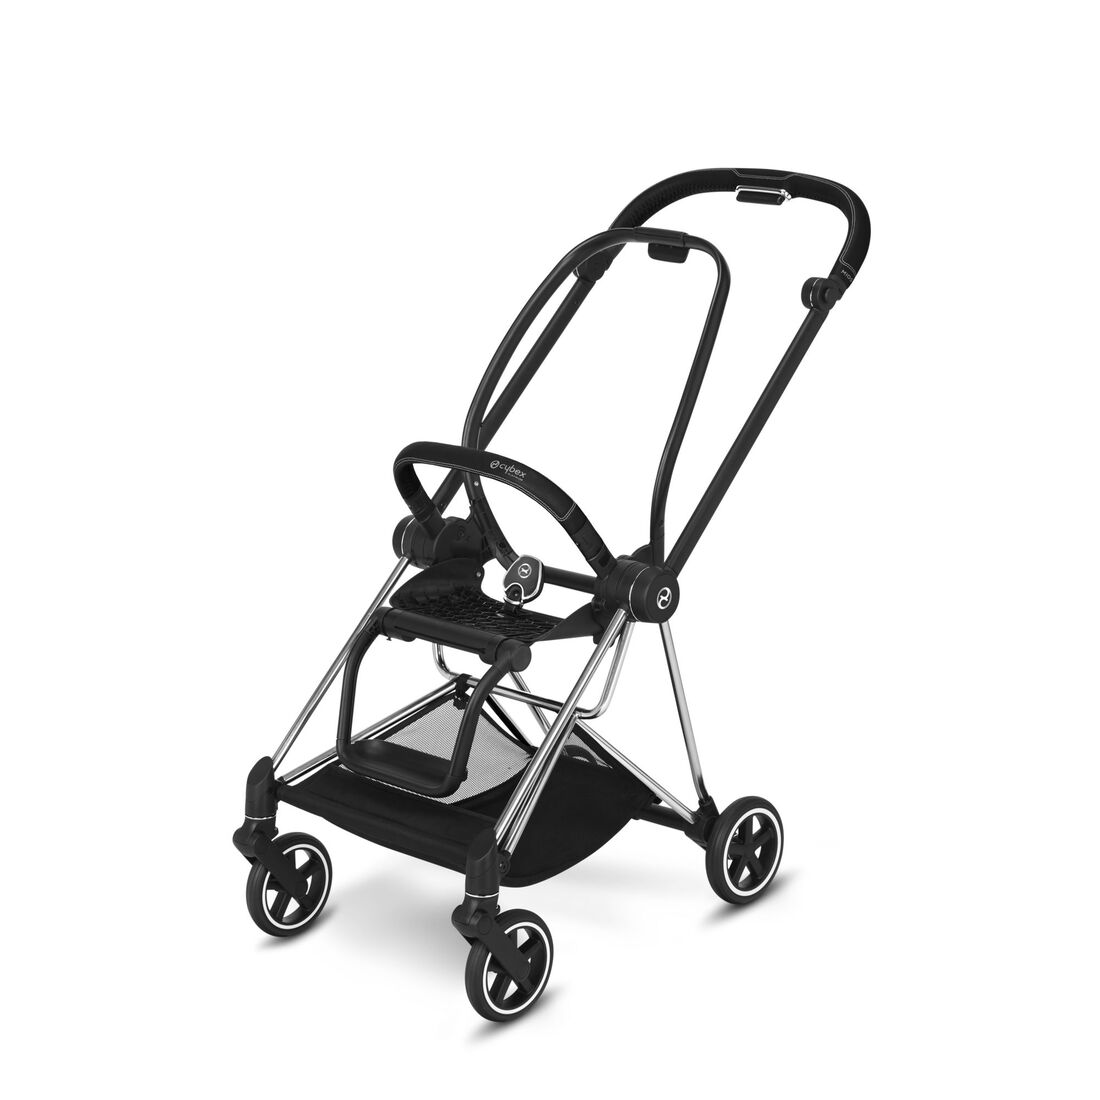 CYBEX Mios Frame - Chrome With Black Details in Chrome With Black Details large image number 1